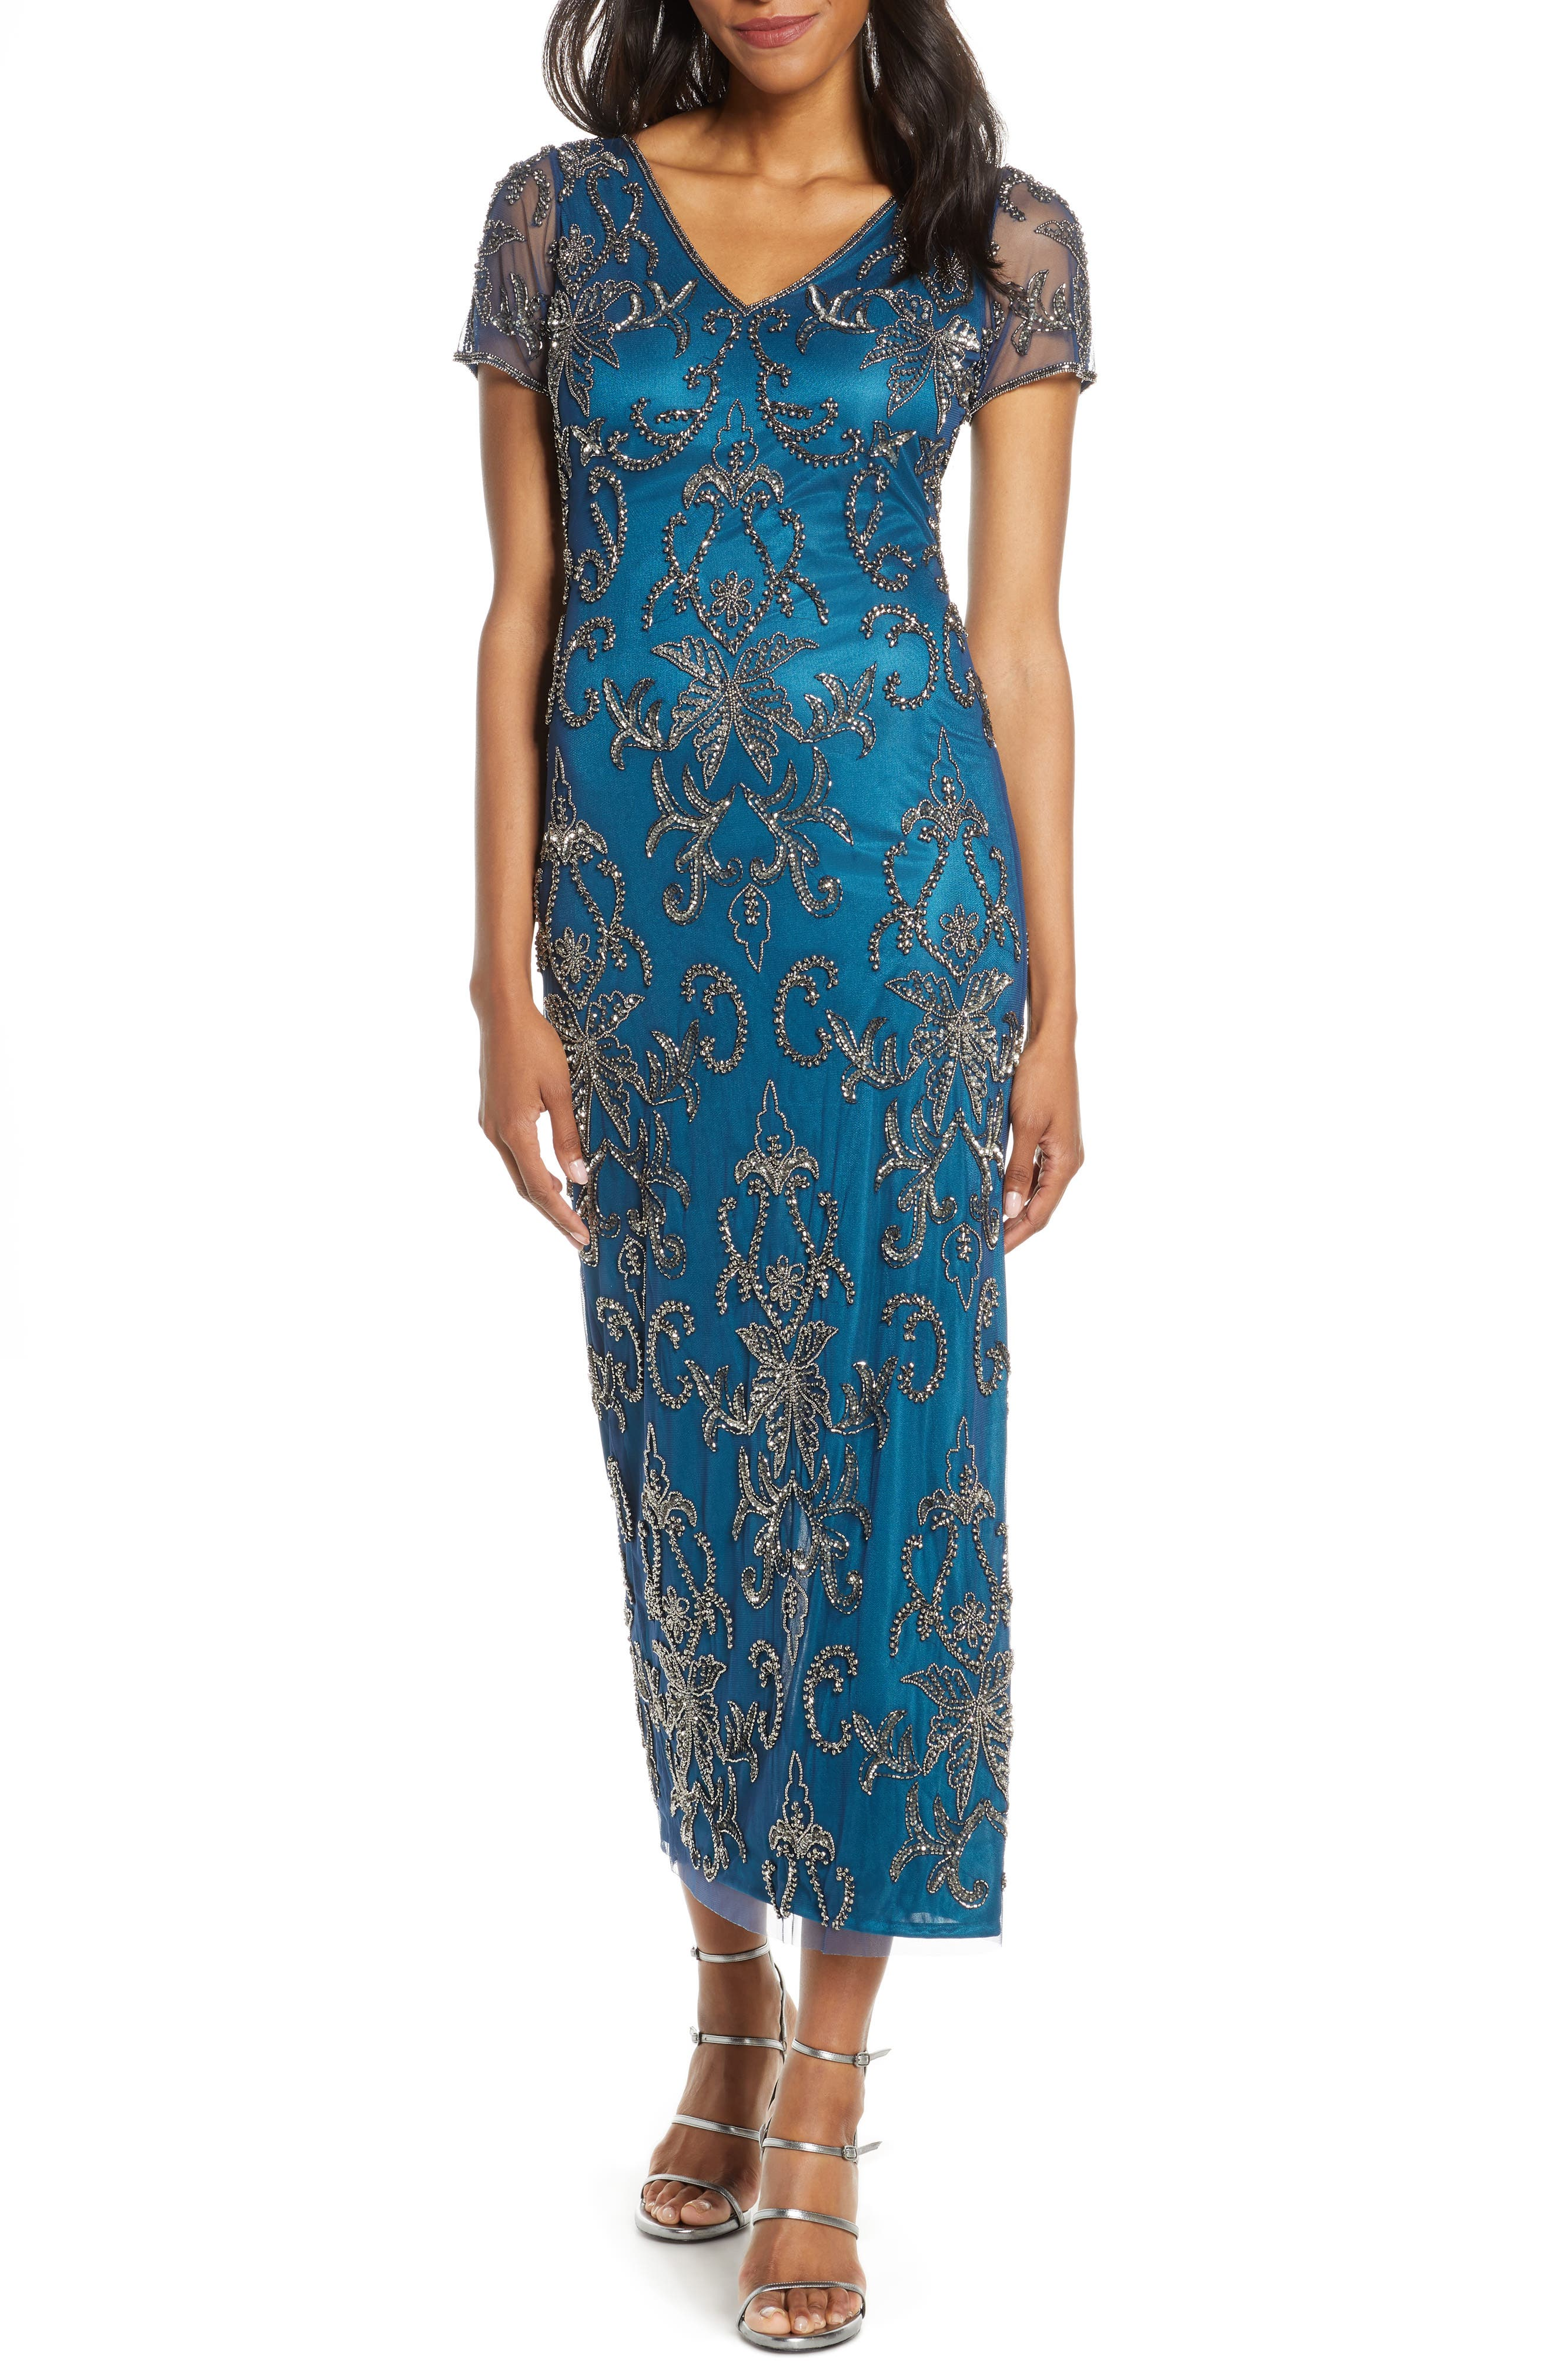 Downton Abbey Inspired Dresses Womens Pisarro Nights V-Neck Beaded Mesh Column Gown Size 16 - Blue $238.00 AT vintagedancer.com